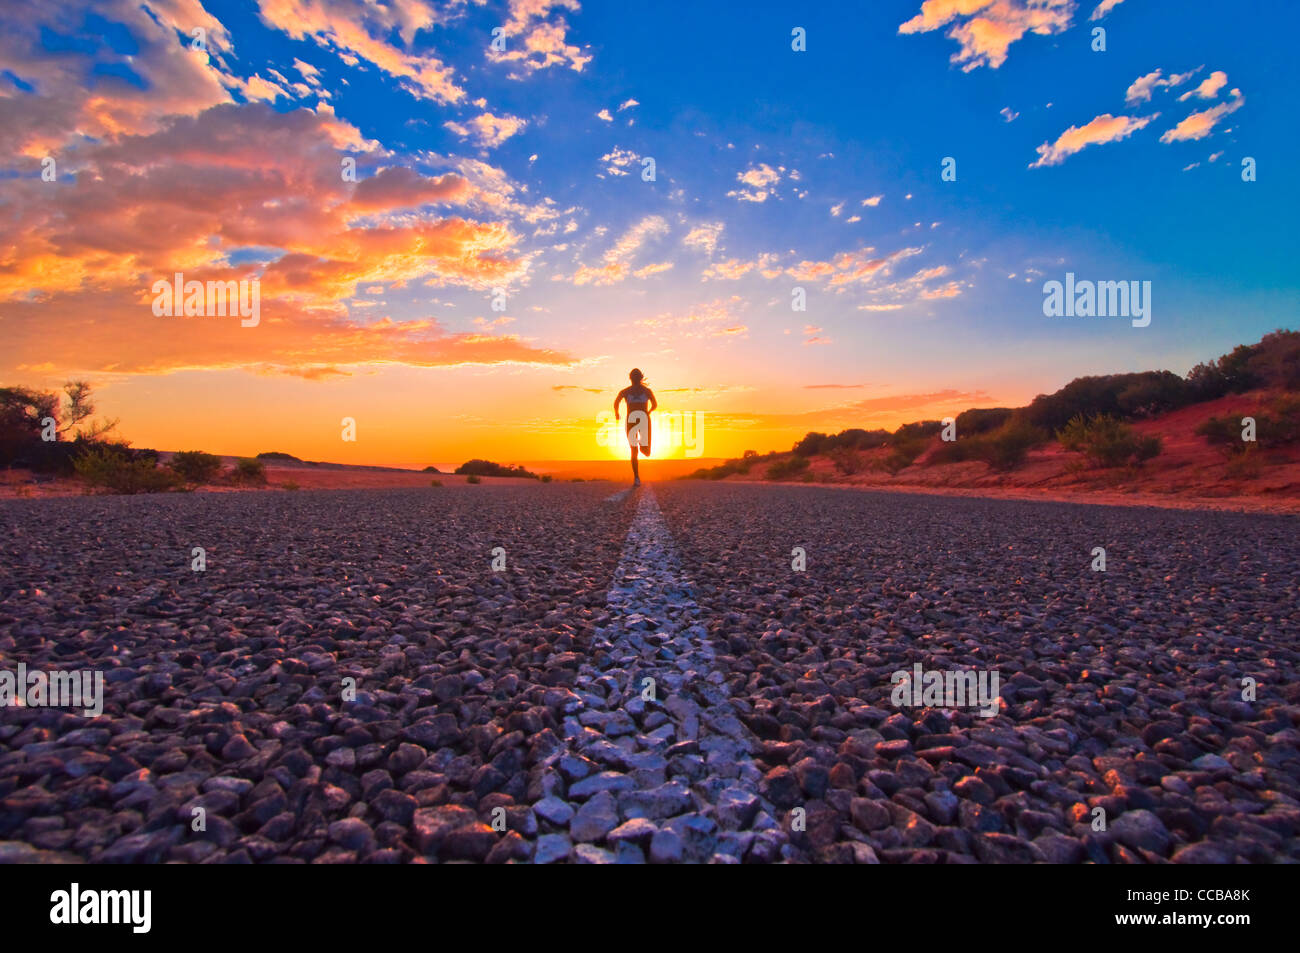 Female Runner jogging at Sunrise on a Remote Road in the Australian Outback, Monkey Mia, Western Australia, Australia - Stock Image